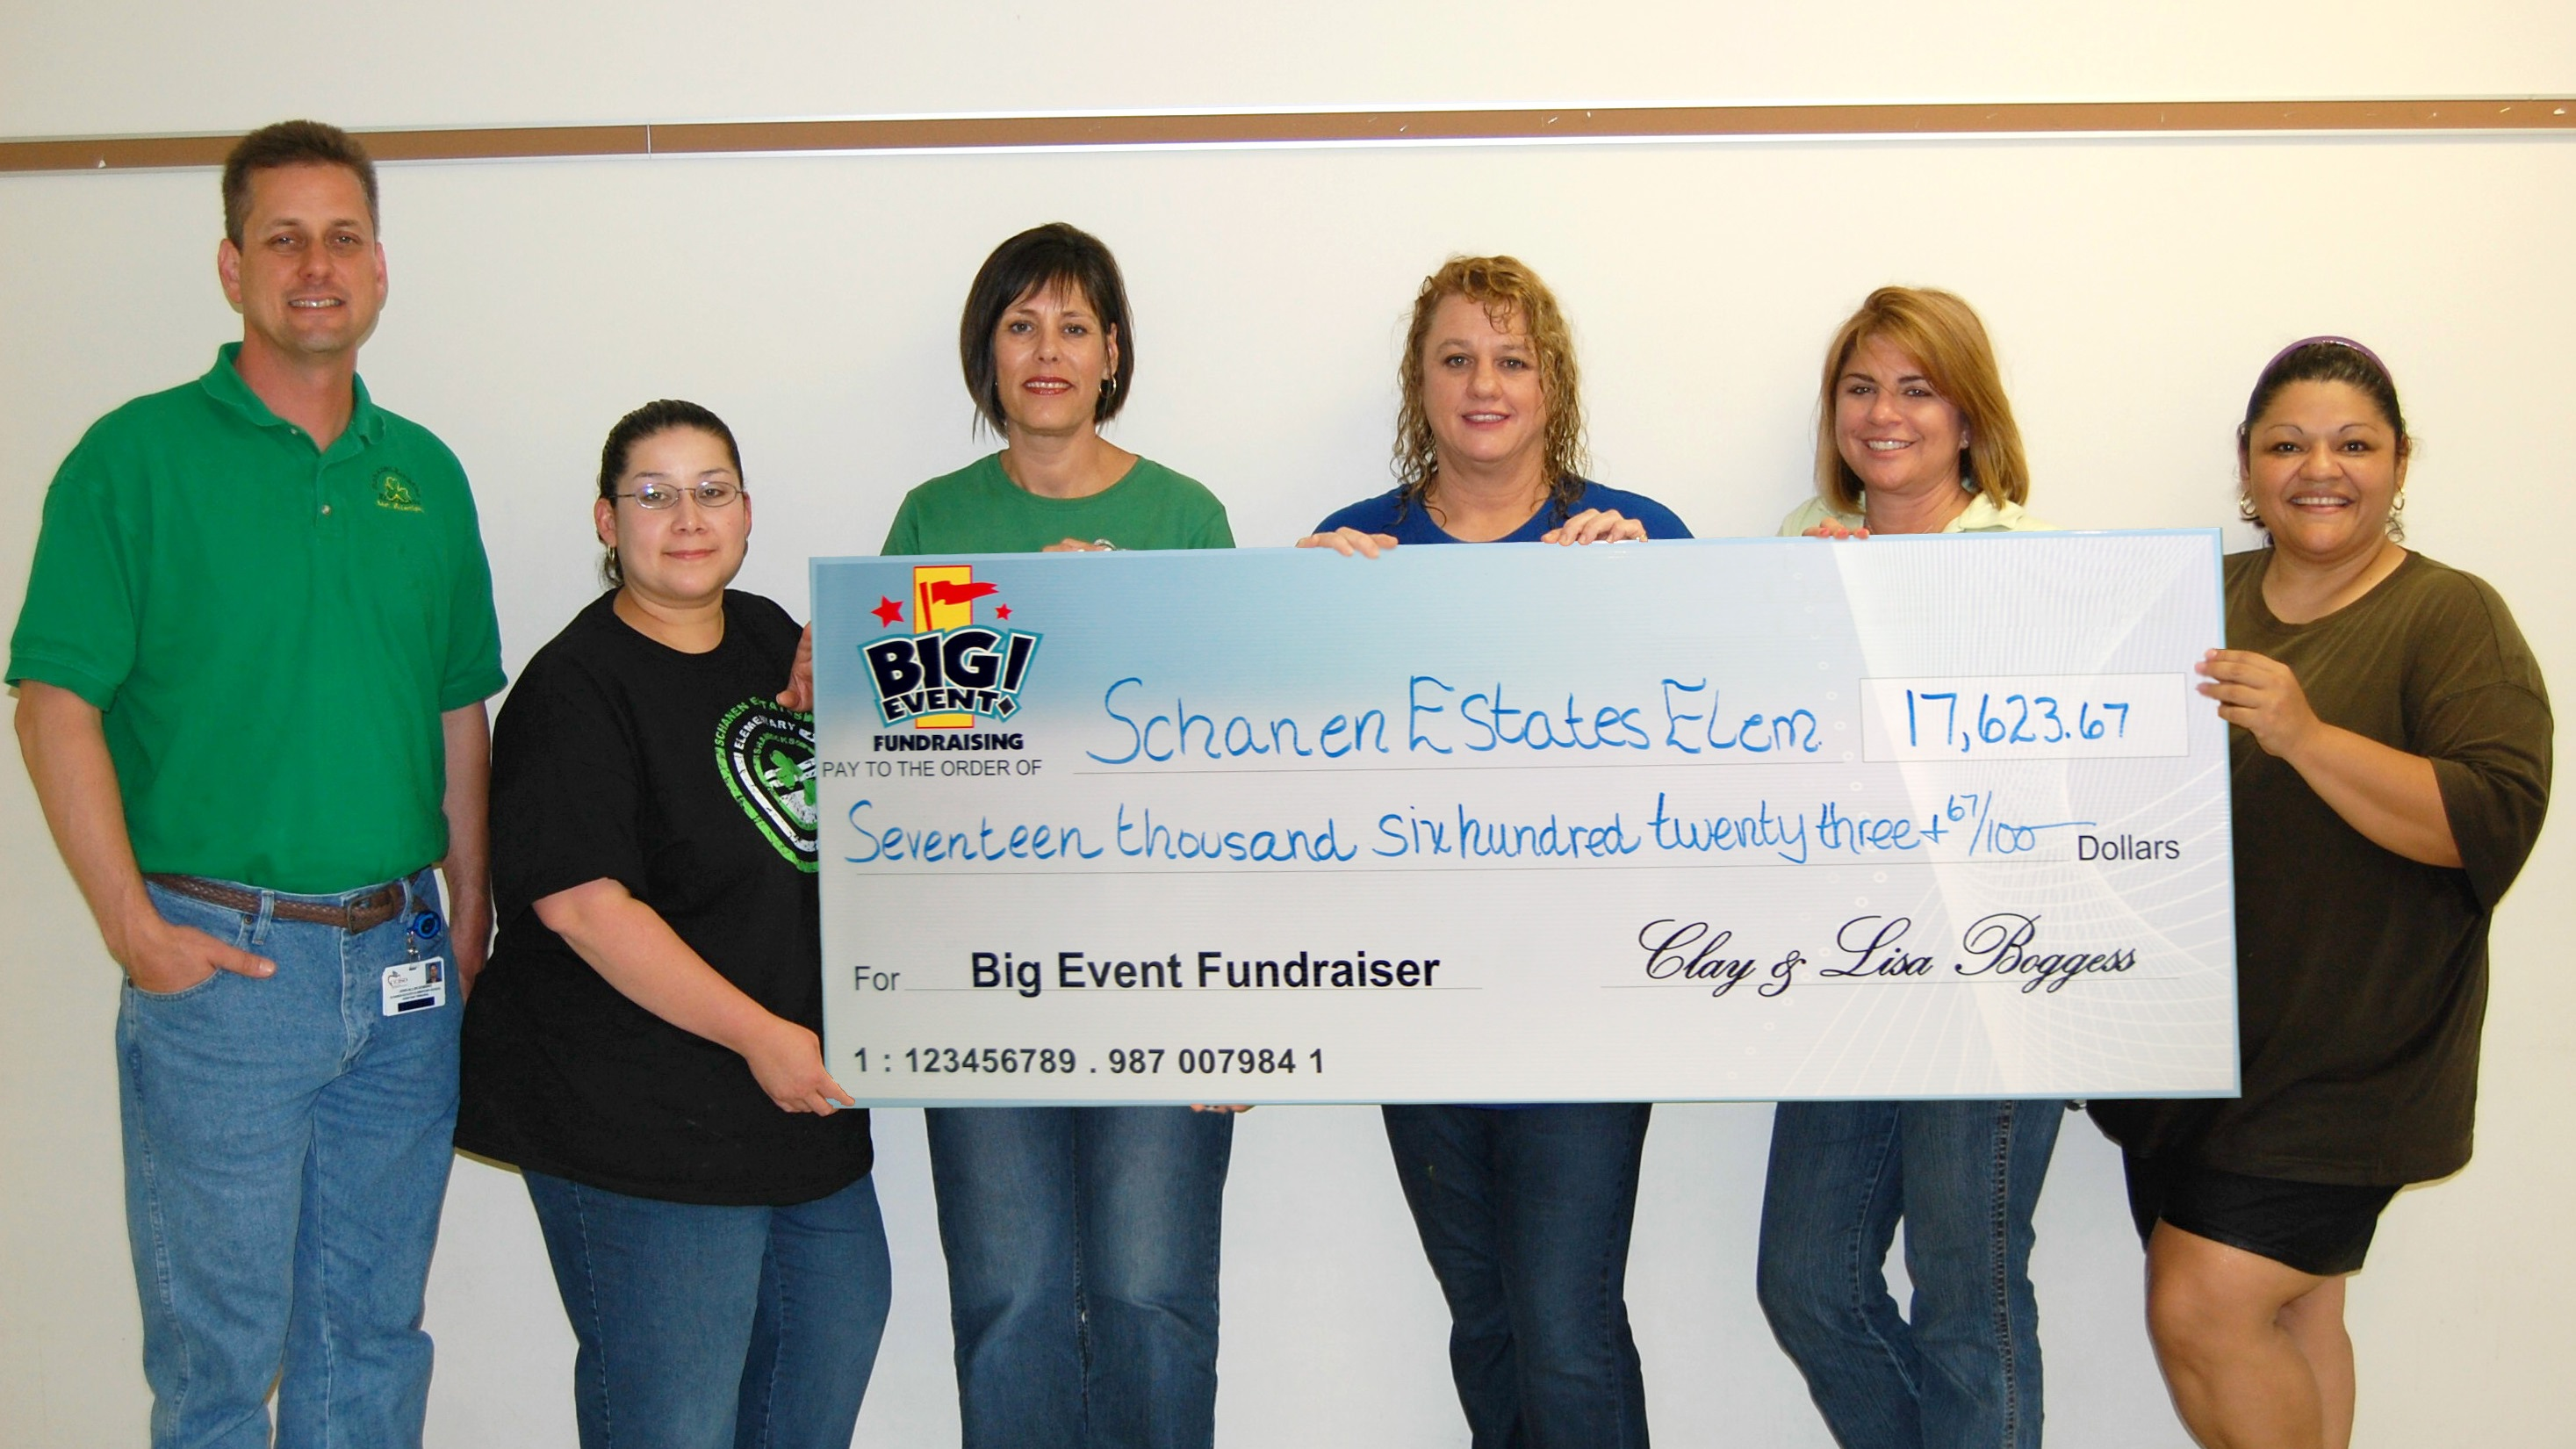 Schanen Estates Elementary School fundraising team holding check